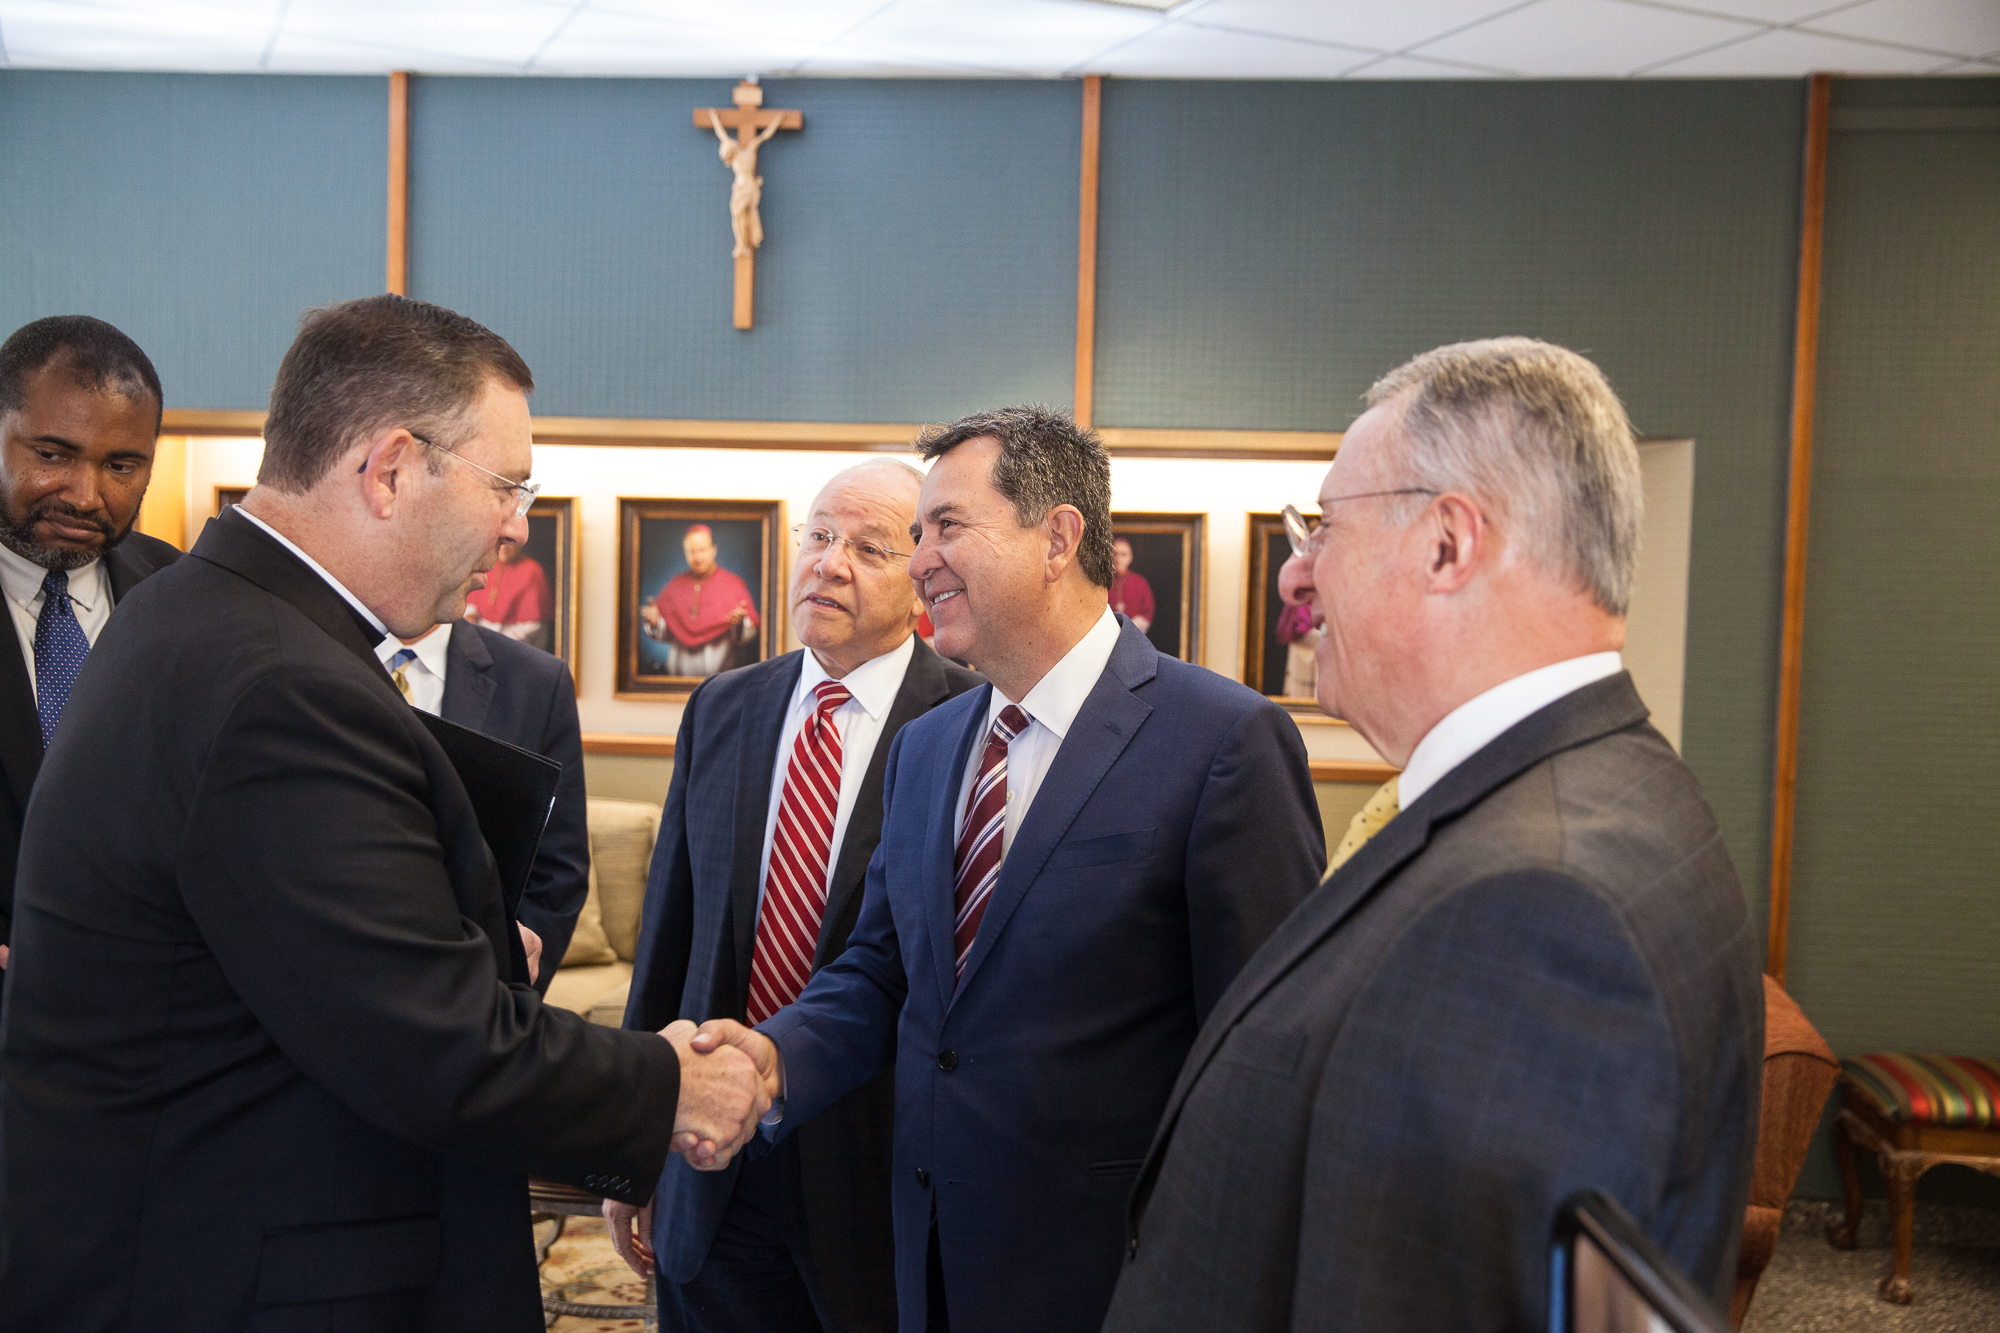 Elder Adrian Ochoa shakes hands with Father James Misko, Vicar General of the Catholic Diocese of Austin, during a visit to the Pastoral Center with Elder Ulisses Soares on October 18, 2019.